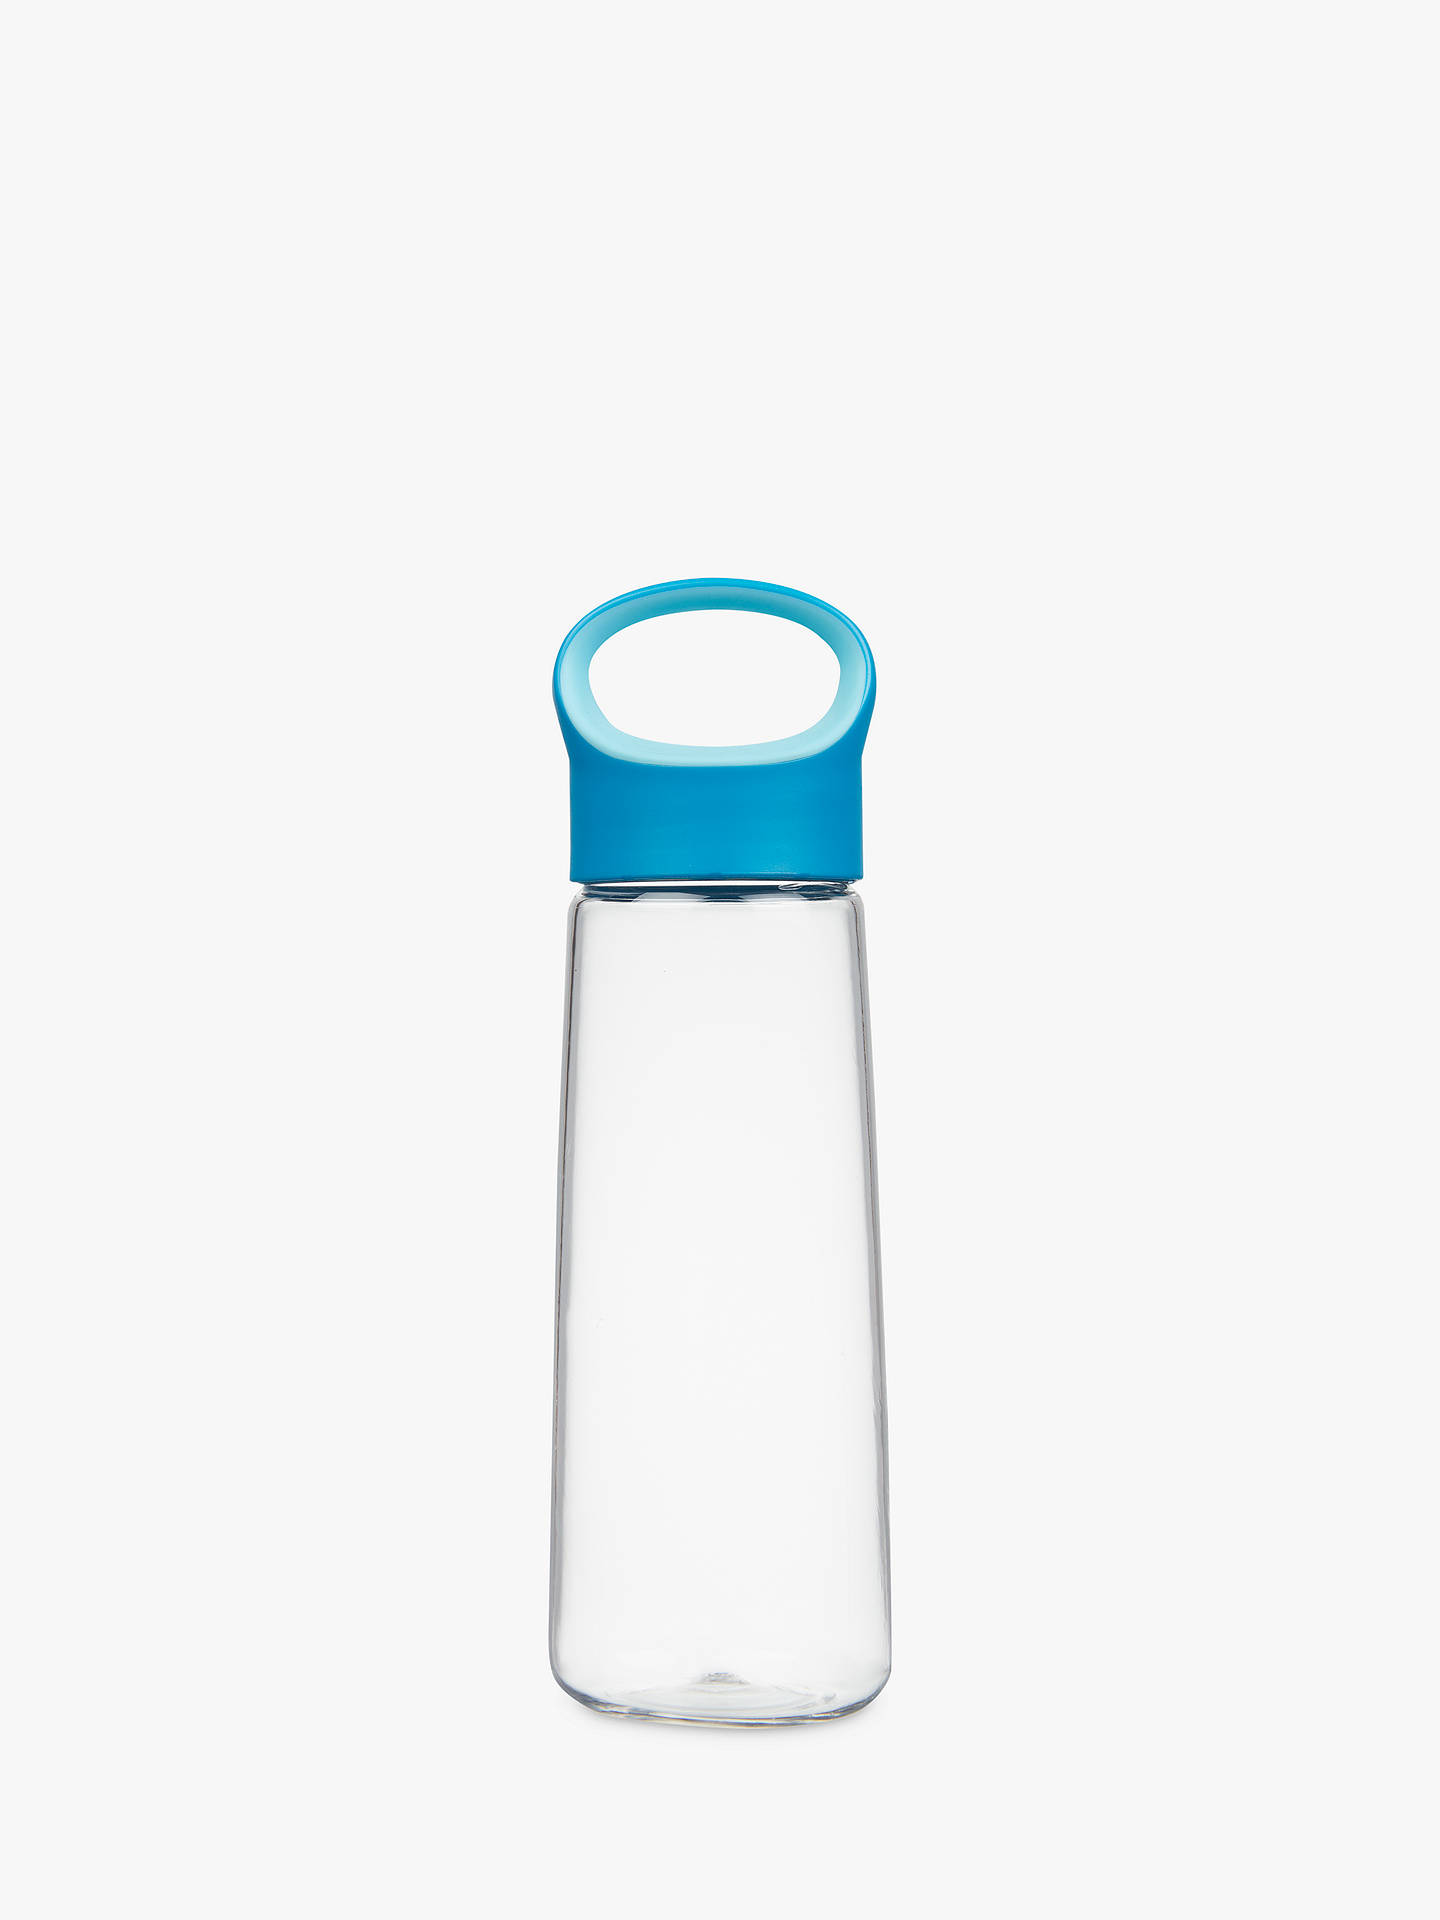 BuyJohn Lewis & Partners Drinks Bottle, 350ml, Clear/Blue Online at johnlewis.com